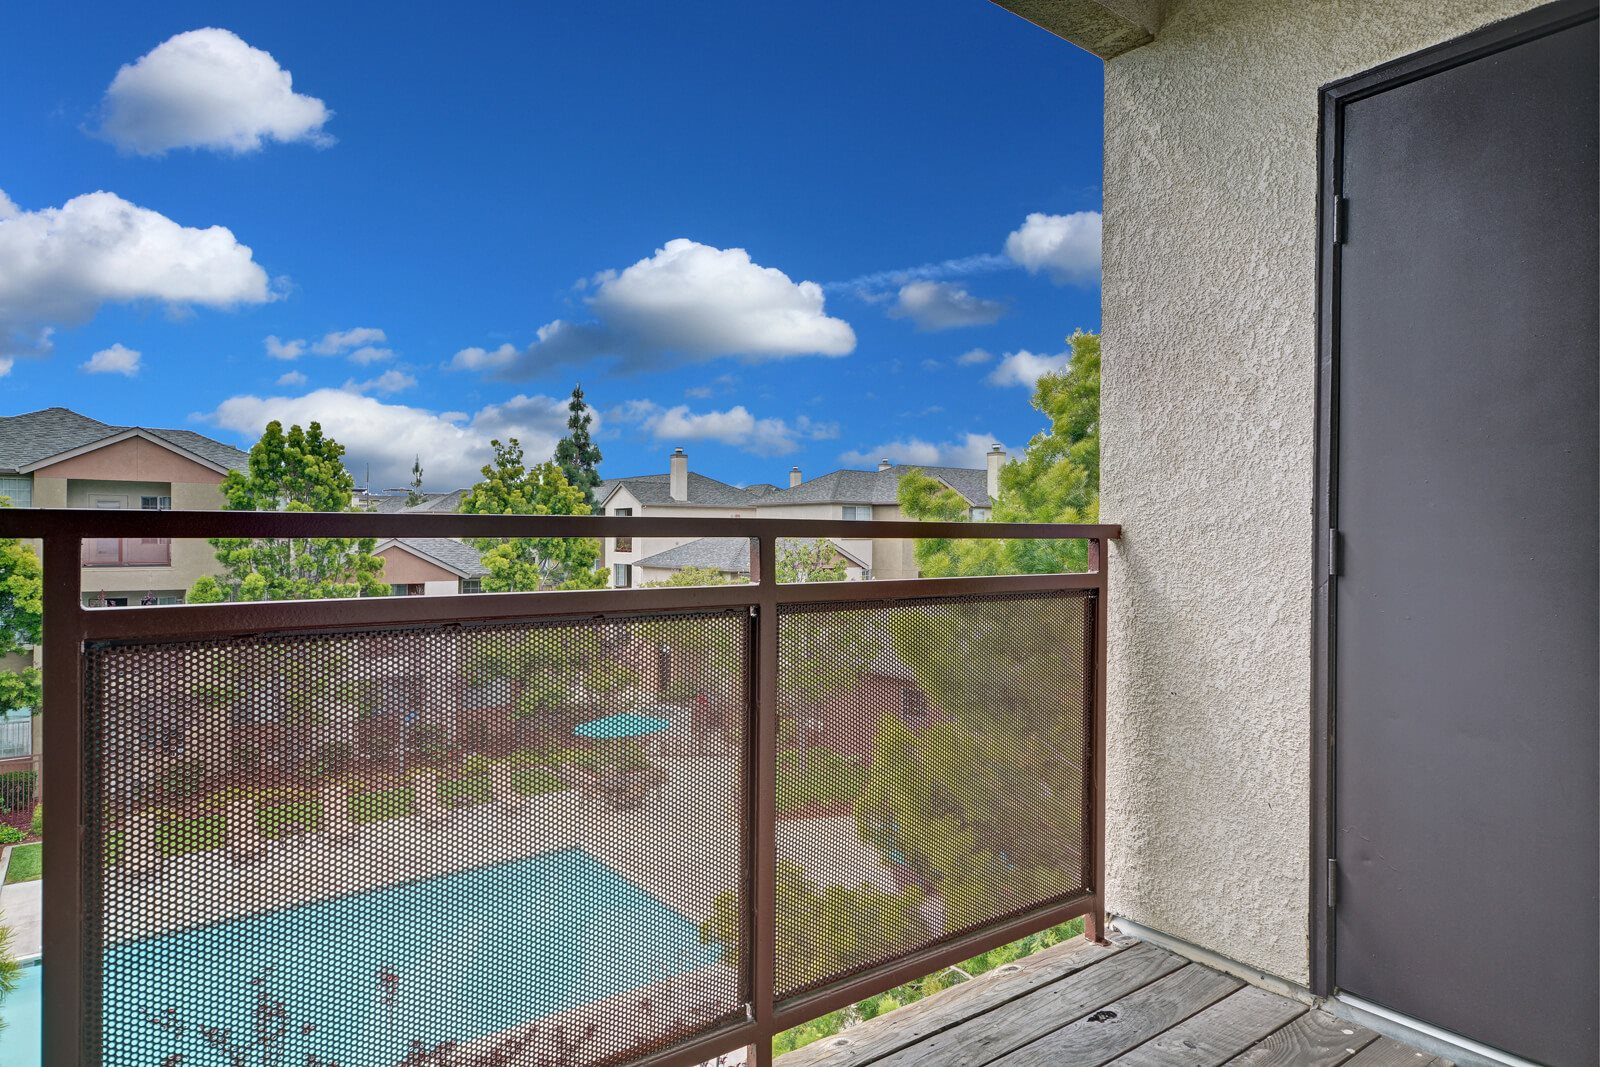 Private Patio With Pool View at Pavona Apartments, 760 N. 7th Street, San Jose